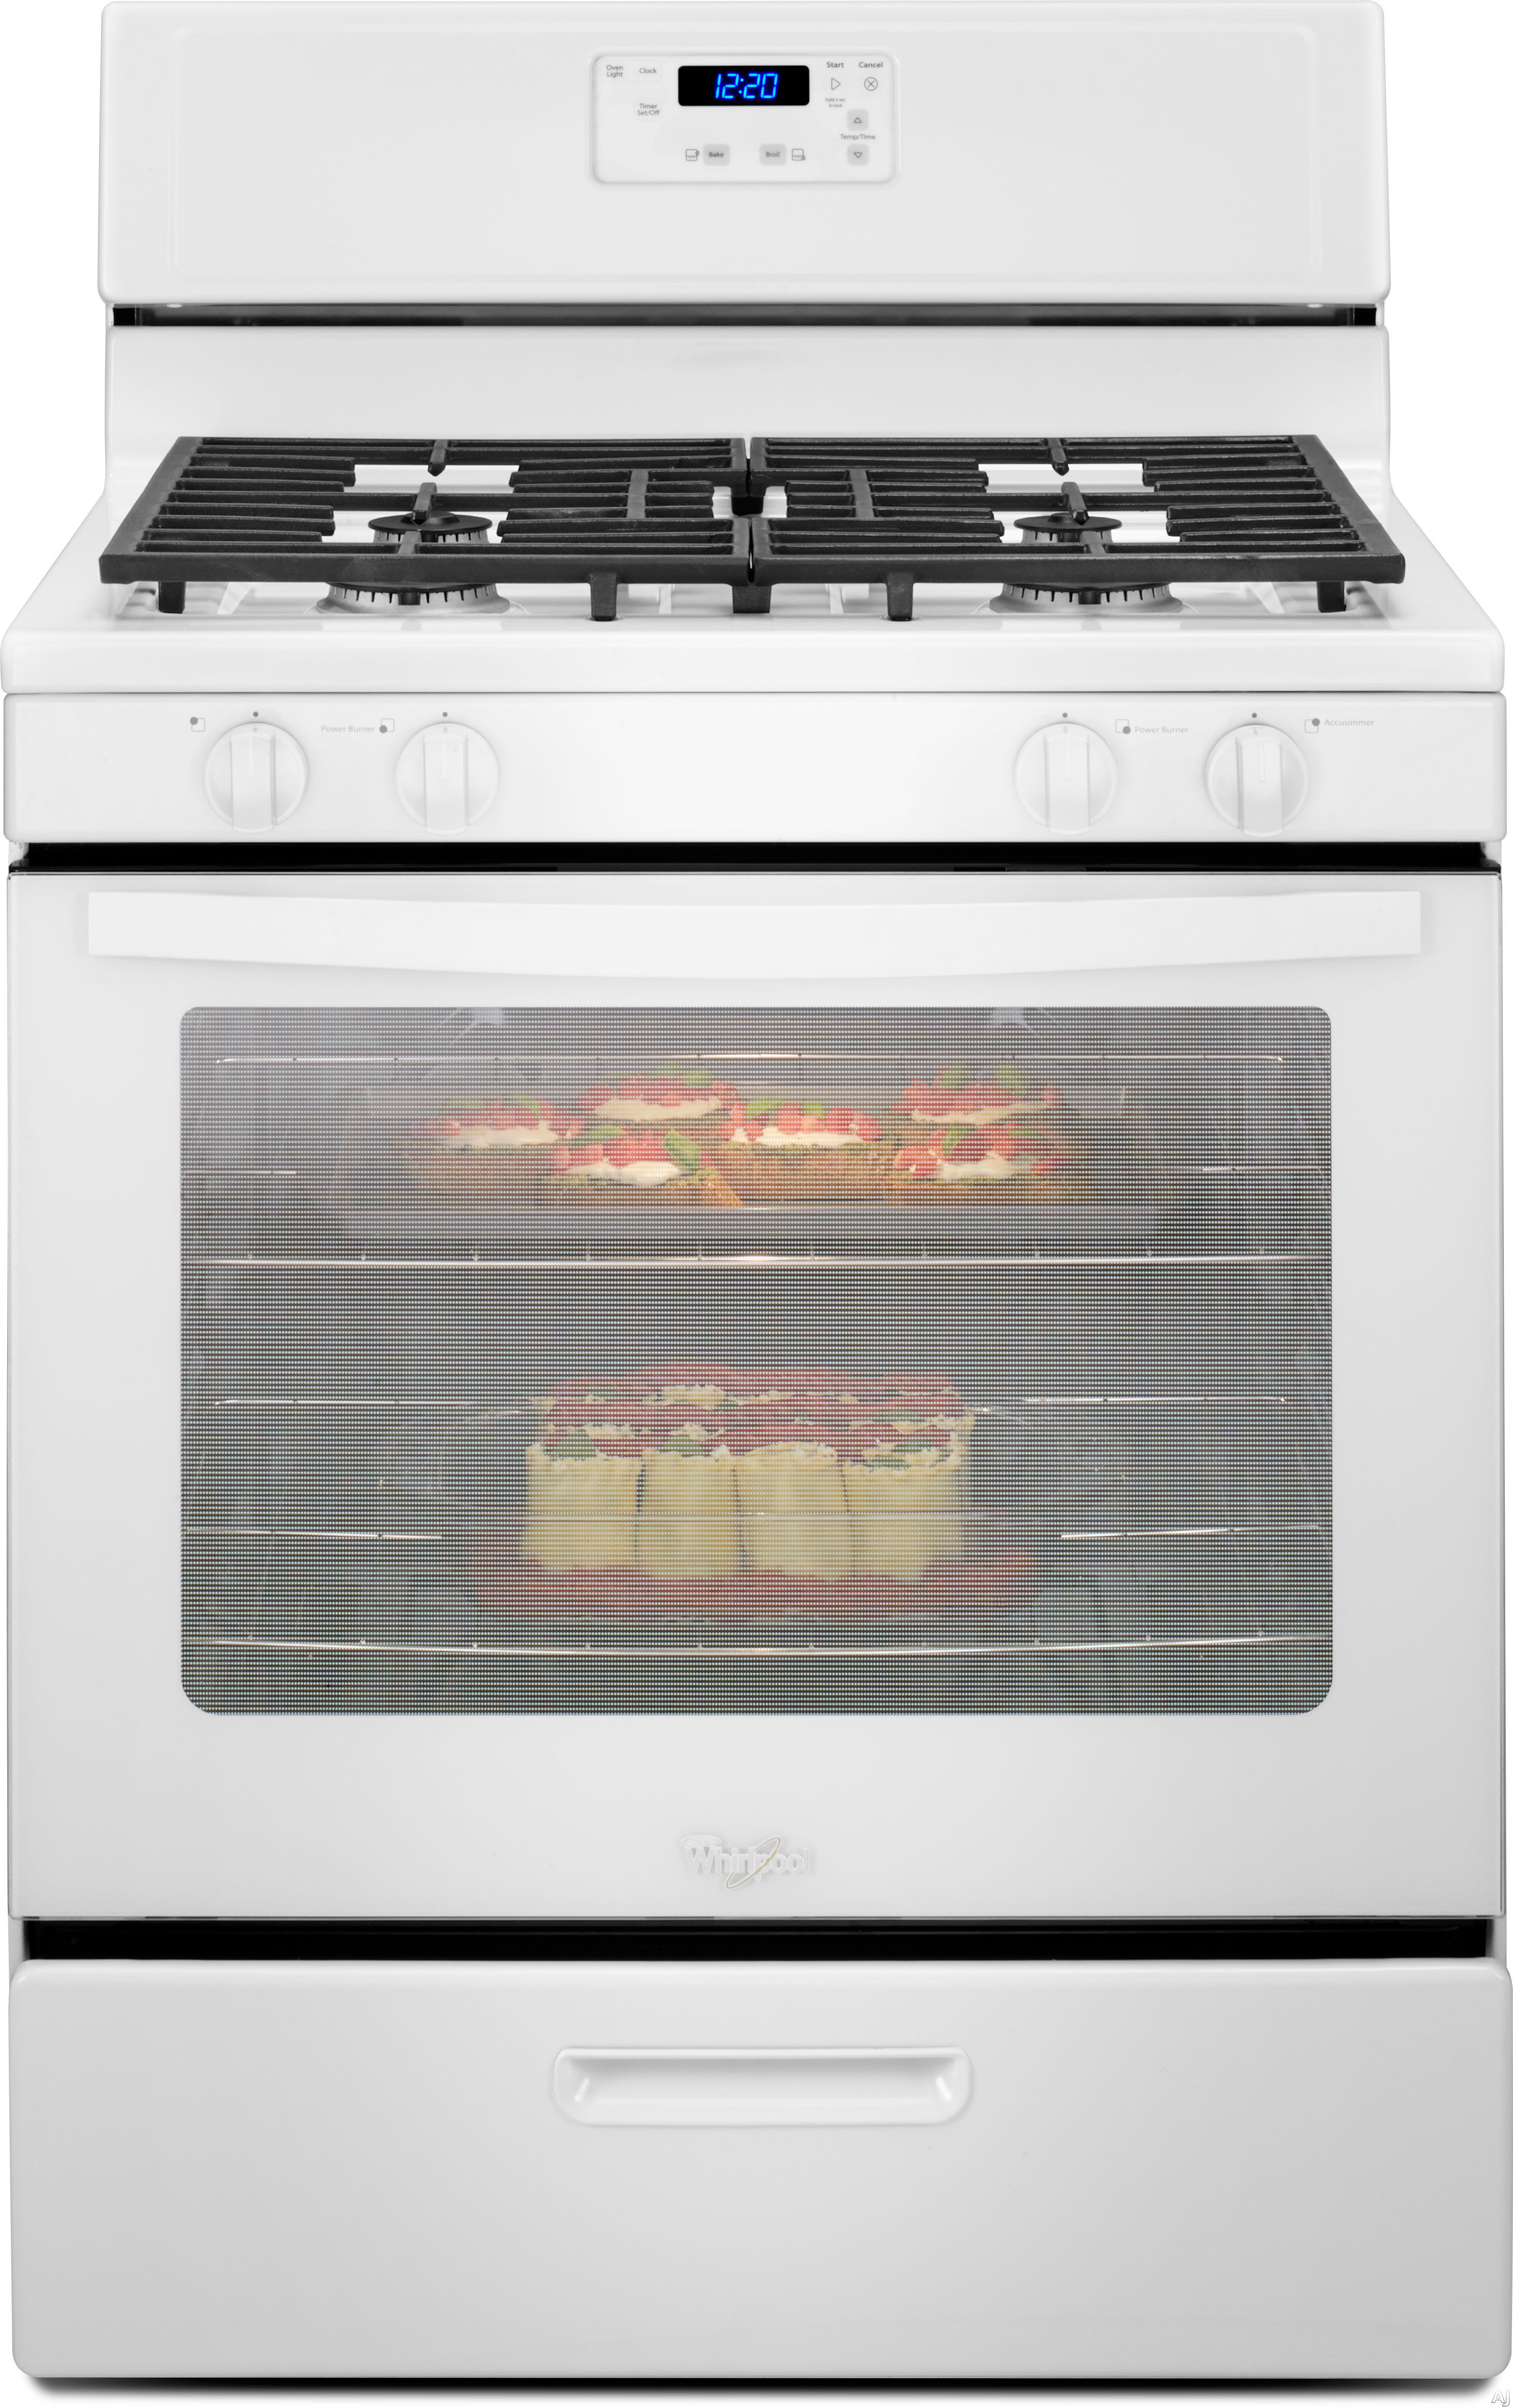 Picture of Whirlpool WFG320M0BW 30 Inch Freestanding Gas Range with 51 cu ft Conventional Oven 4 Sealed Burners Simmer Burner Hidden Bake Element Oven Light and Broiler Drawer White